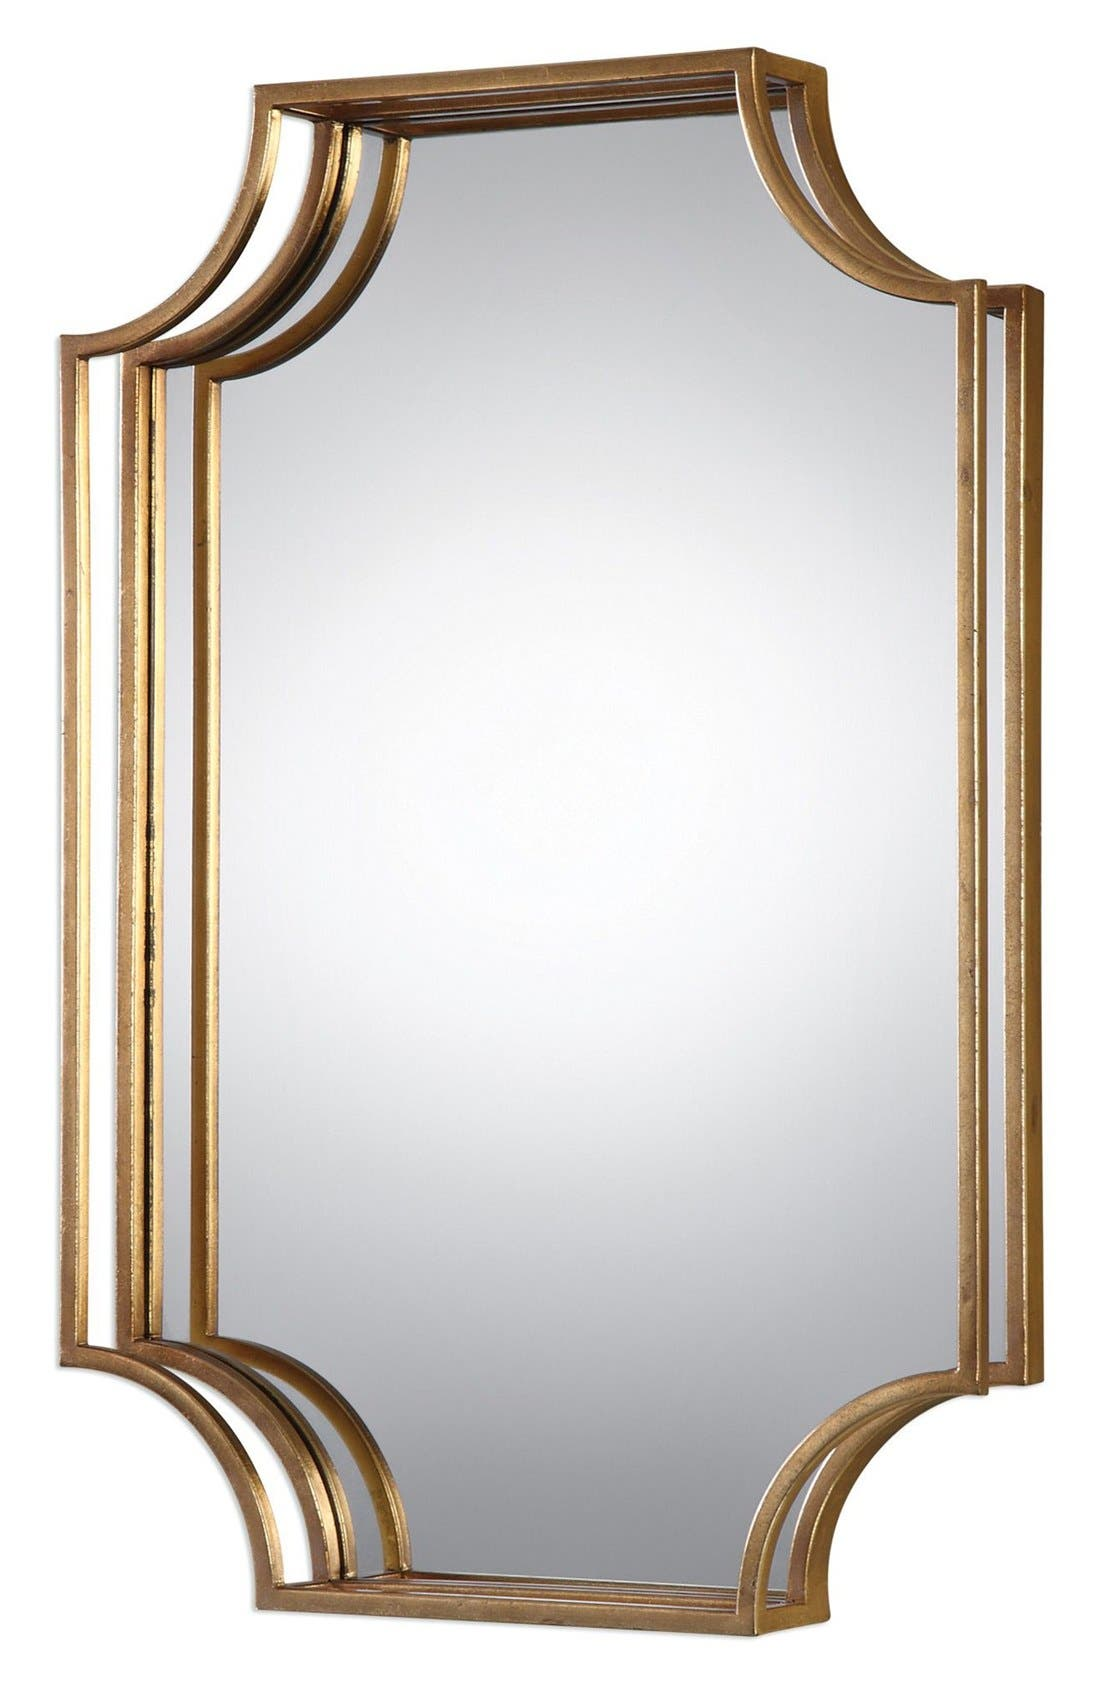 Alternate Image 1 Selected - Uttermost Open Frame Wall Mirror